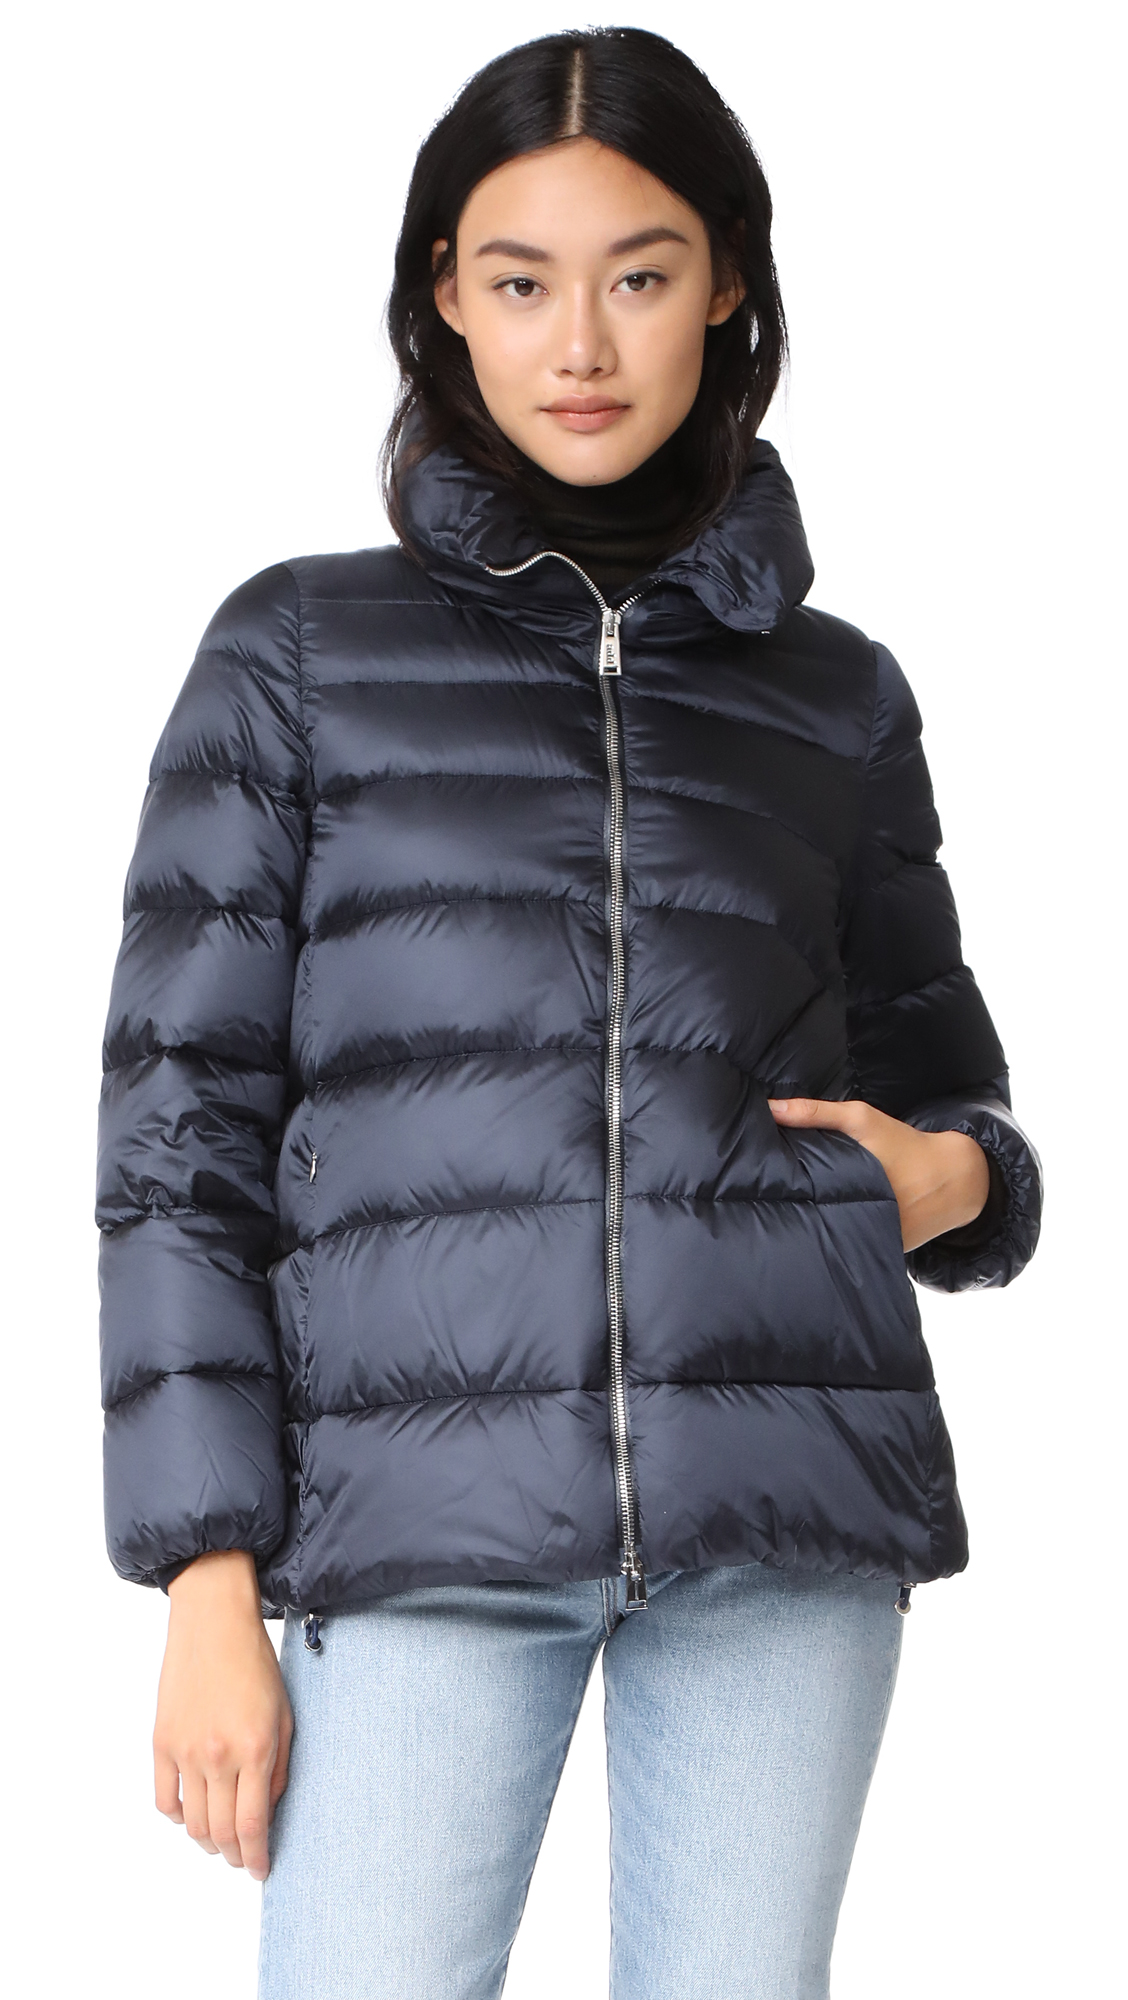 Add Down Puffer Down Jacket - Navy